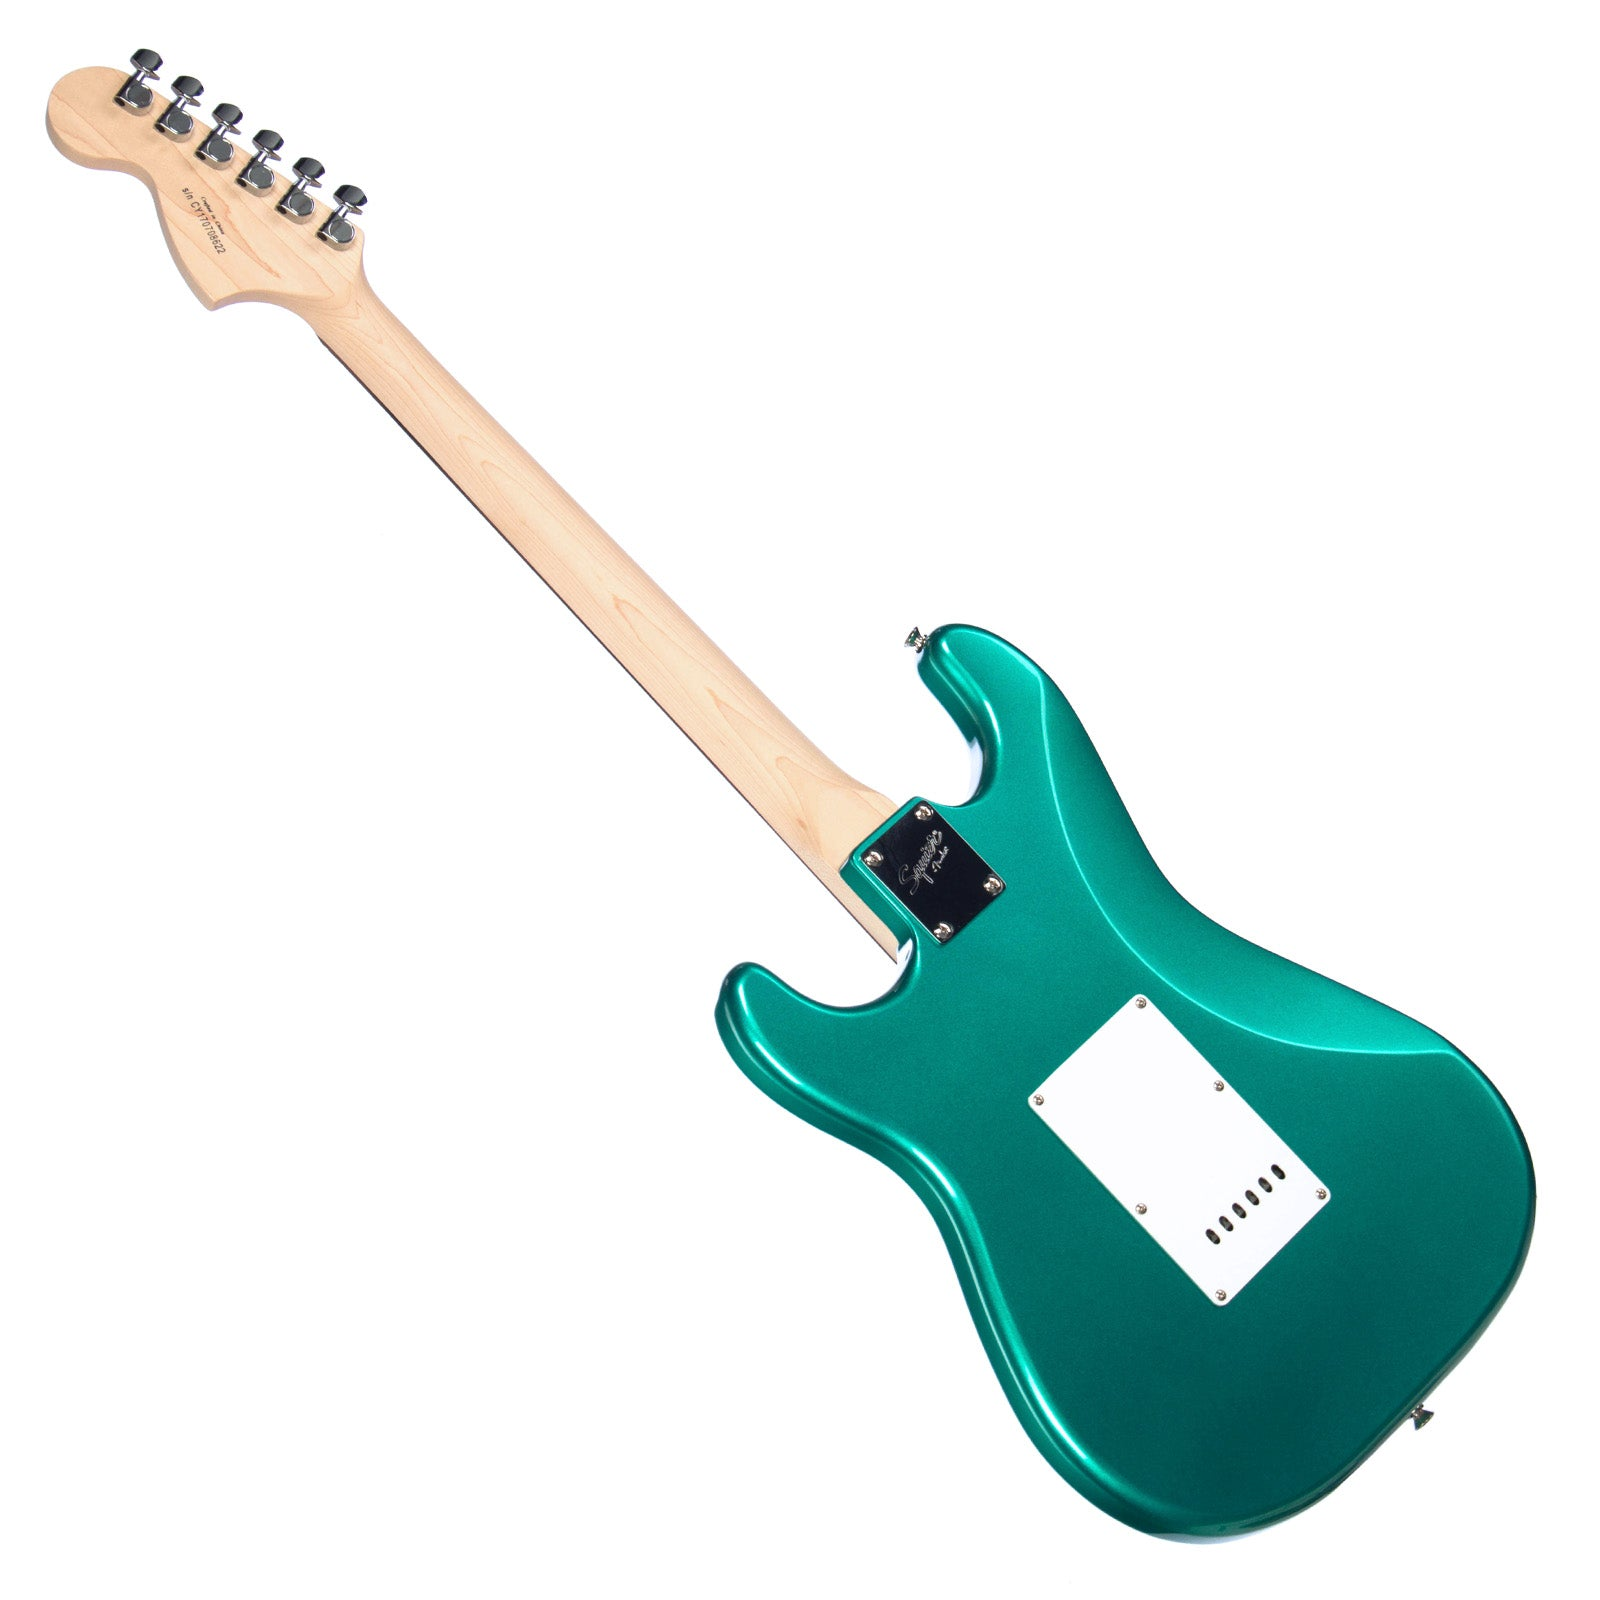 Squier Affinity Strat Wiring Diagram: Squier Affinity Series Stratocaster HSS Race Green Fender